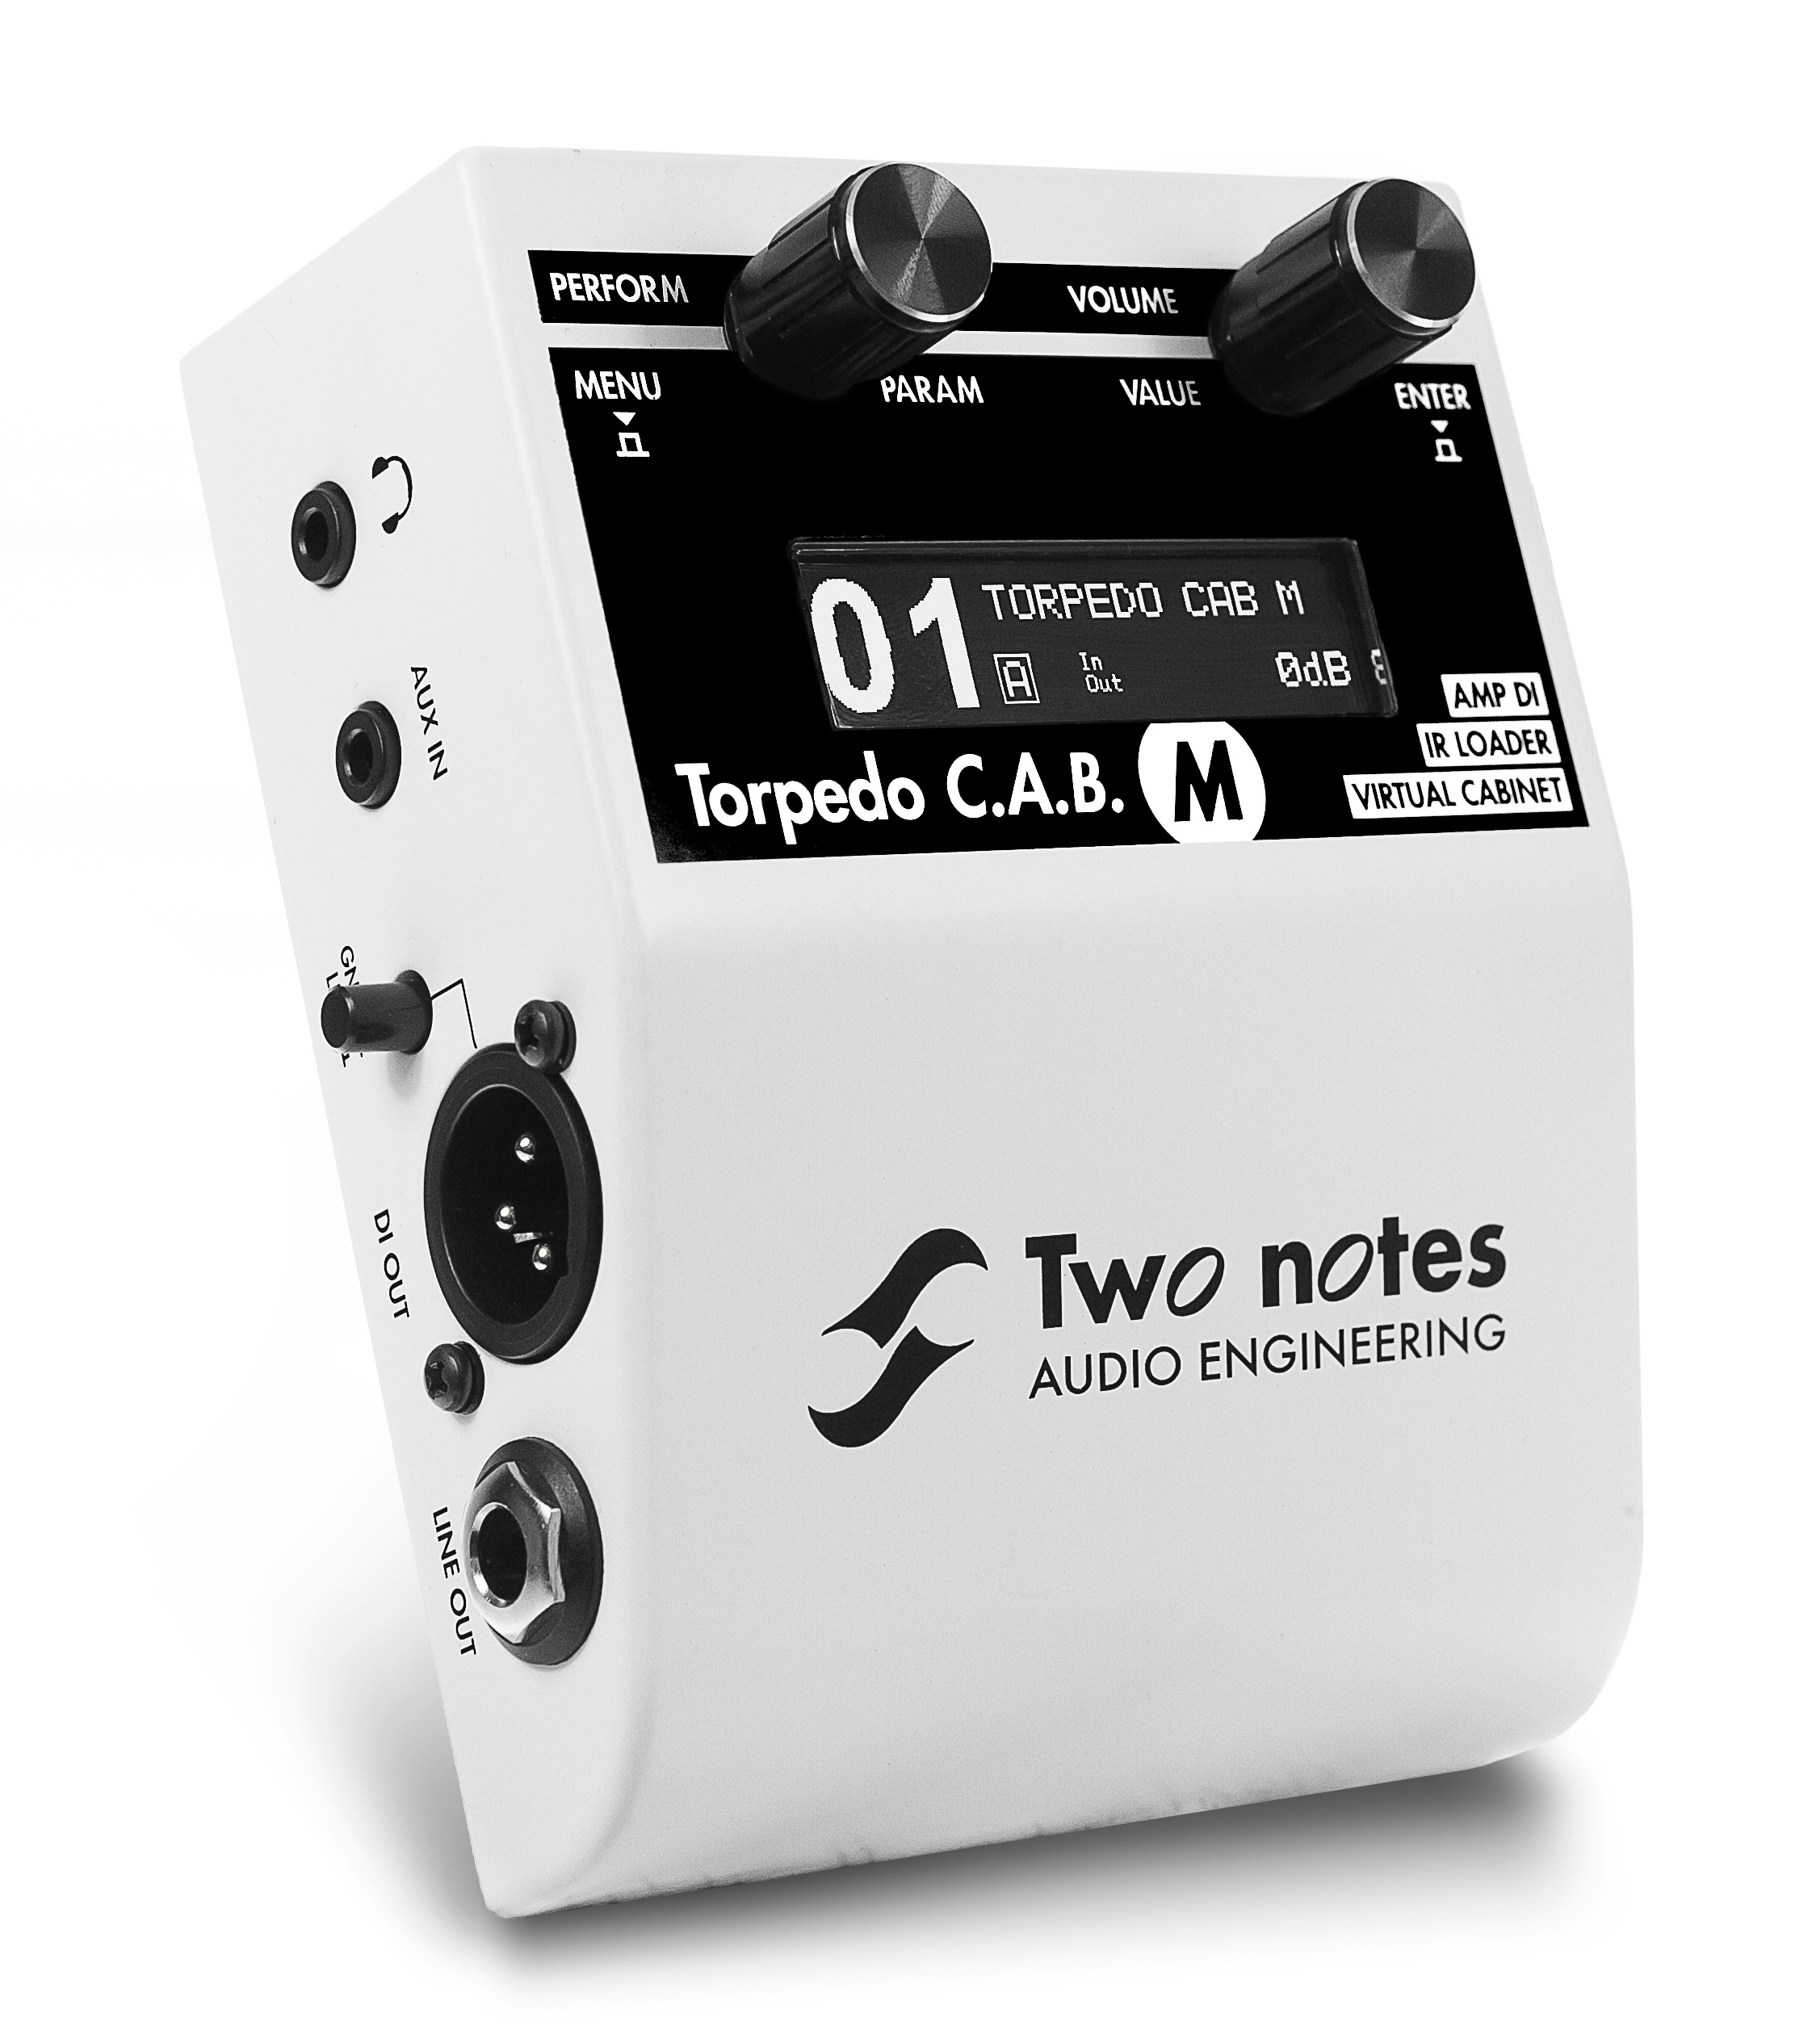 Two Notes Audio Engineering Torpedo C.A.B. M (NAMM 2019